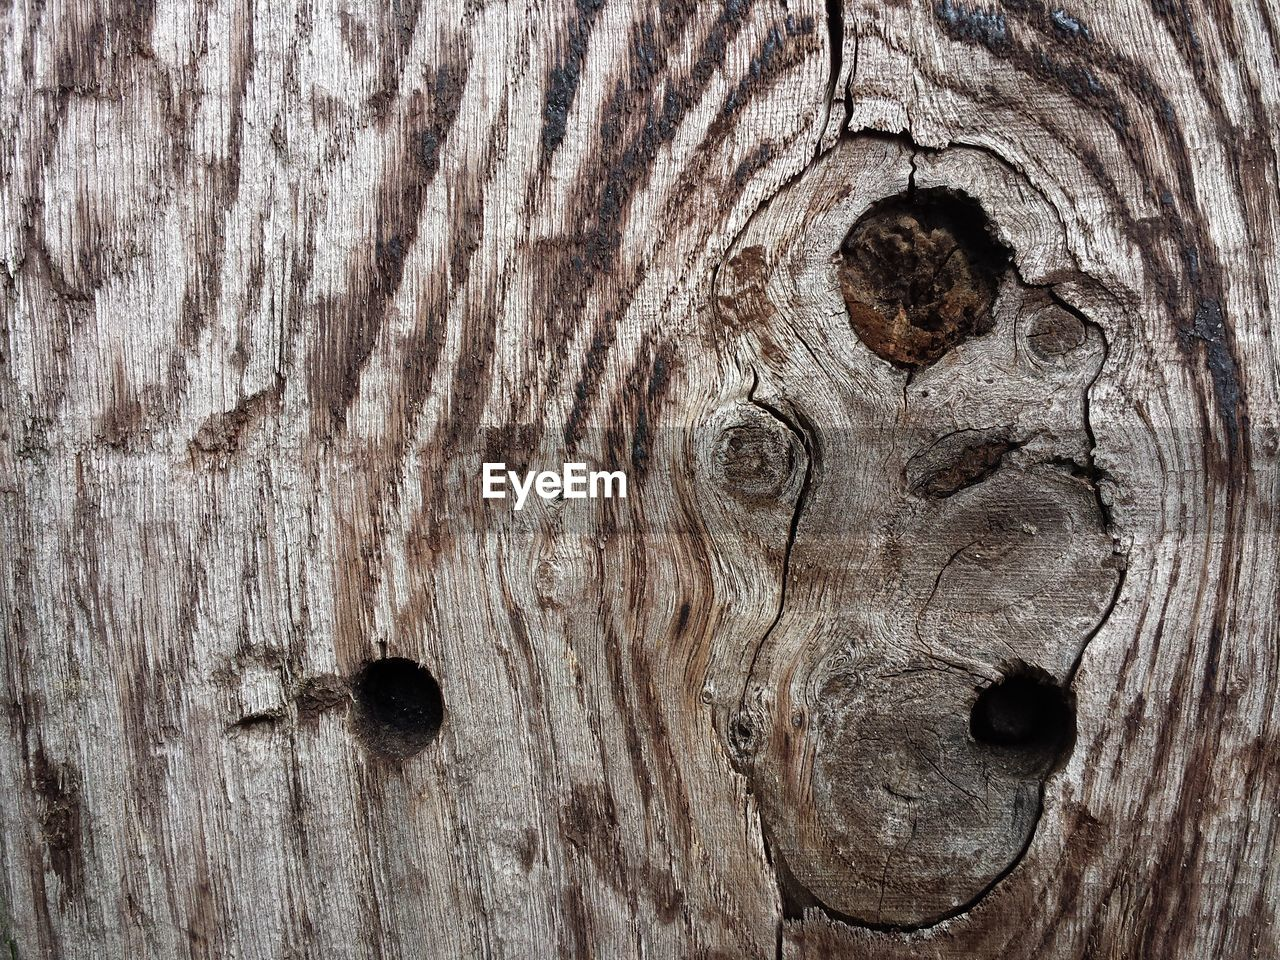 backgrounds, textured, wood - material, full frame, close-up, pattern, wood, no people, rough, knotted wood, brown, tree, wood grain, natural pattern, tree trunk, weathered, day, plank, hole, trunk, outdoors, textured effect